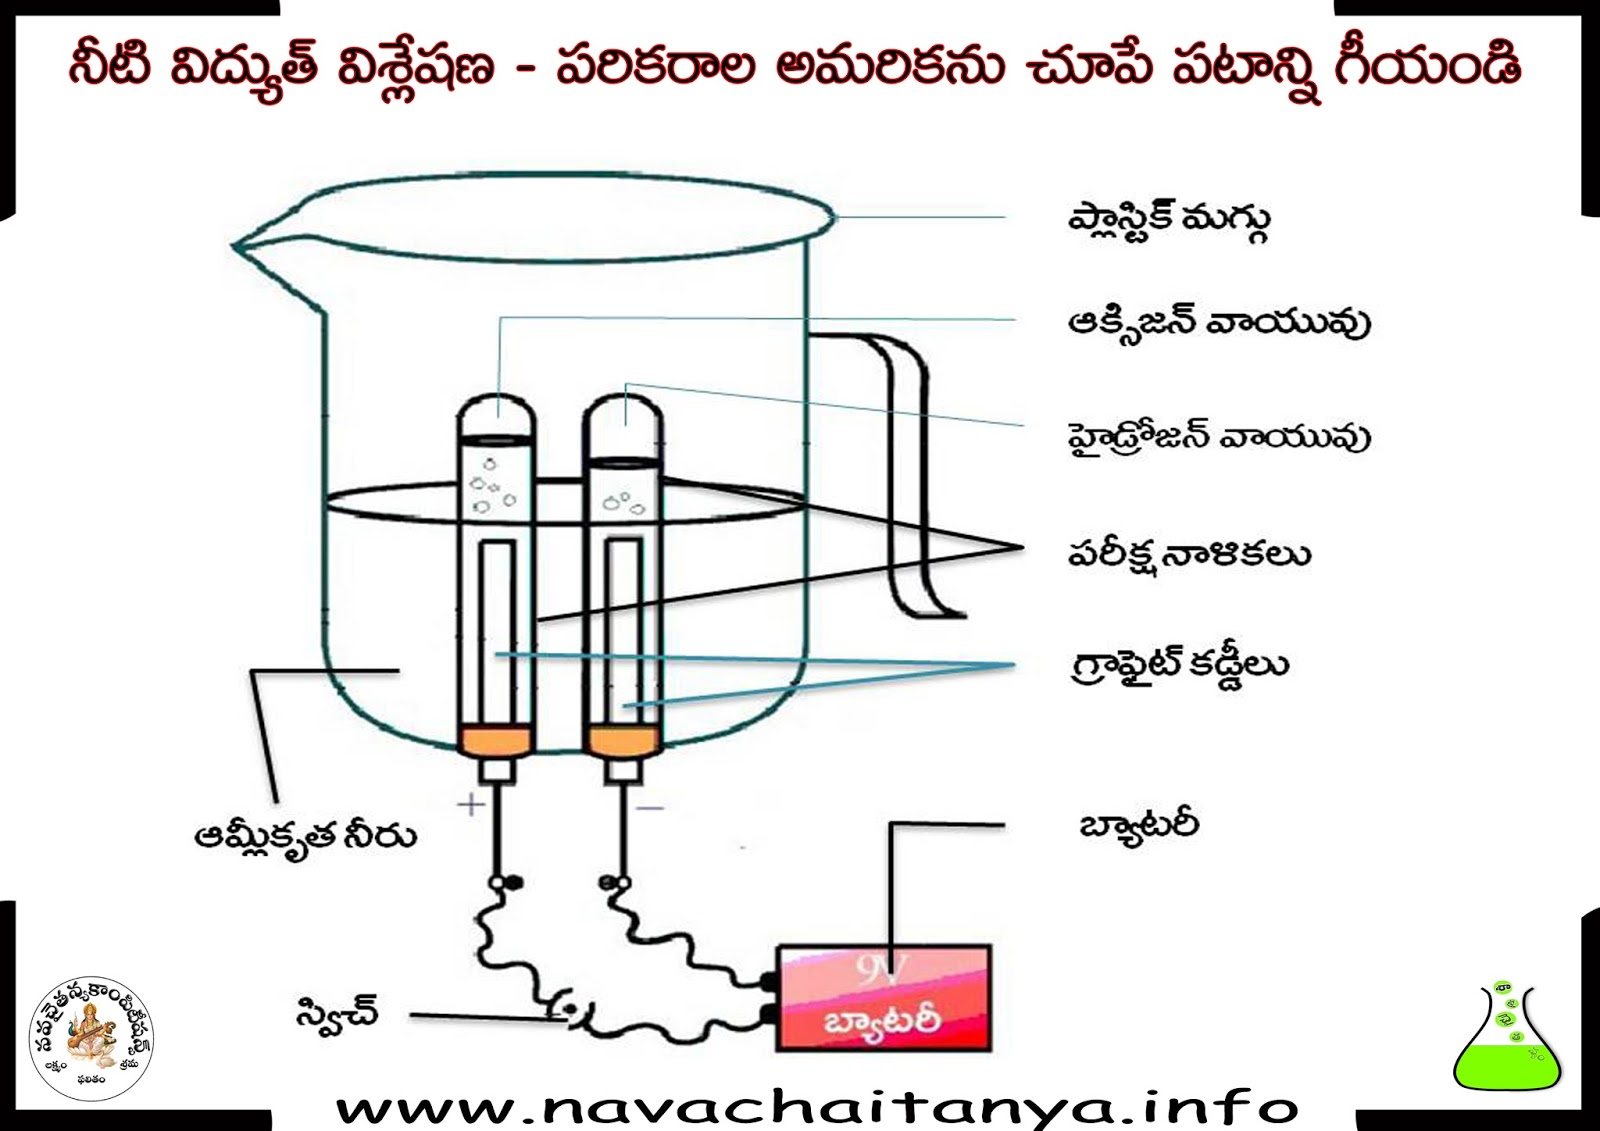 science diagrams for class 8 cats skull bones diagram 10th physical నట వదయదవశలష